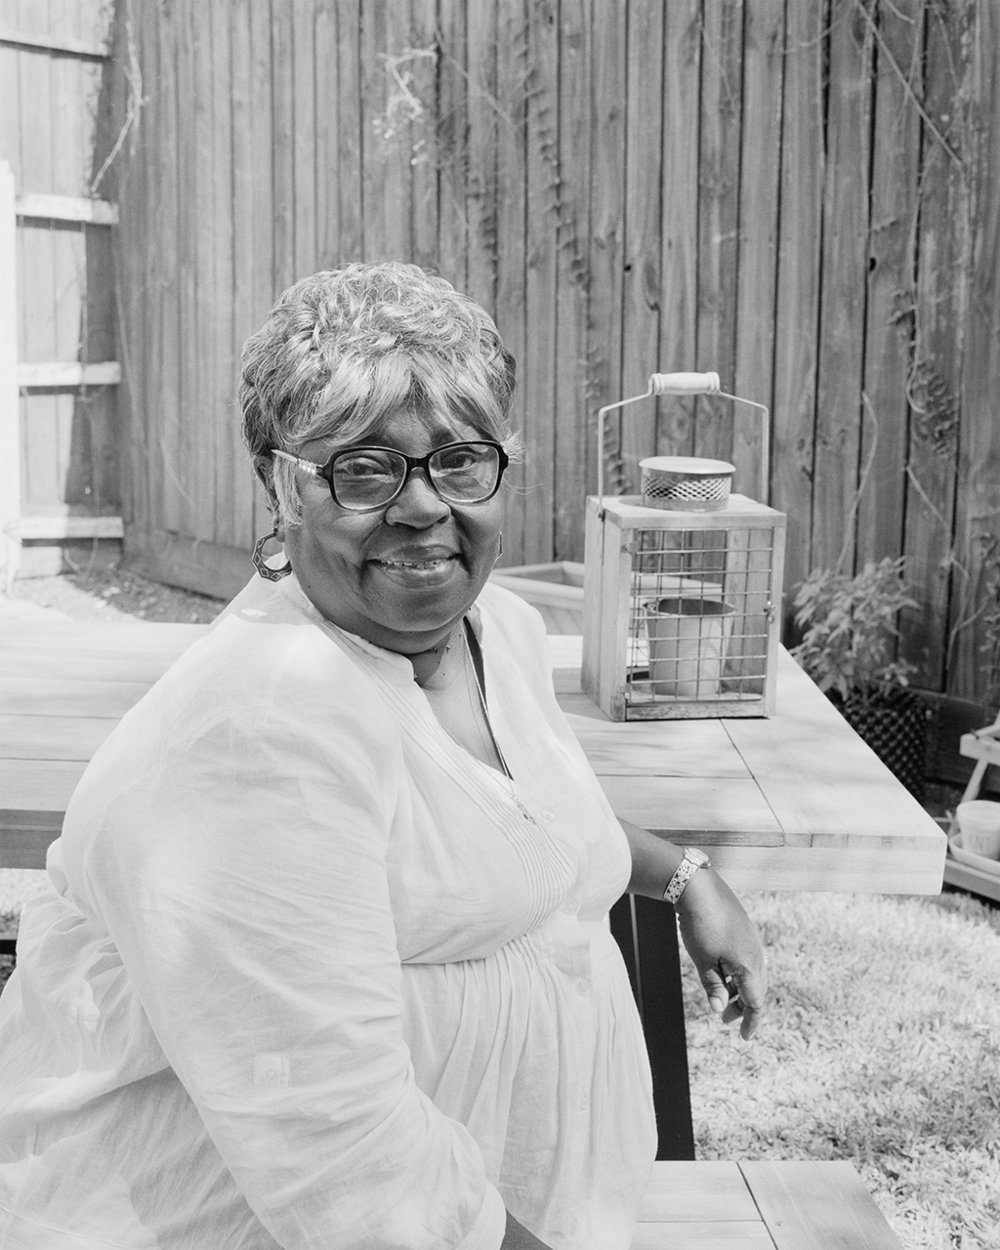 Ruby Barnes - I had my one baby boy; I had him inside the prison system. That was hard. That's the worst thing you could do, when you be in a hospital and then somebody to come and take your child from you, you know. Even though it's your family member okay, the only time you held the child…you had to go in a certain room to hold your baby and [you could] stay in there but two days [at] most. One doctor extended my stay a couple of days so I could be with my baby, and then my sister came and got him.